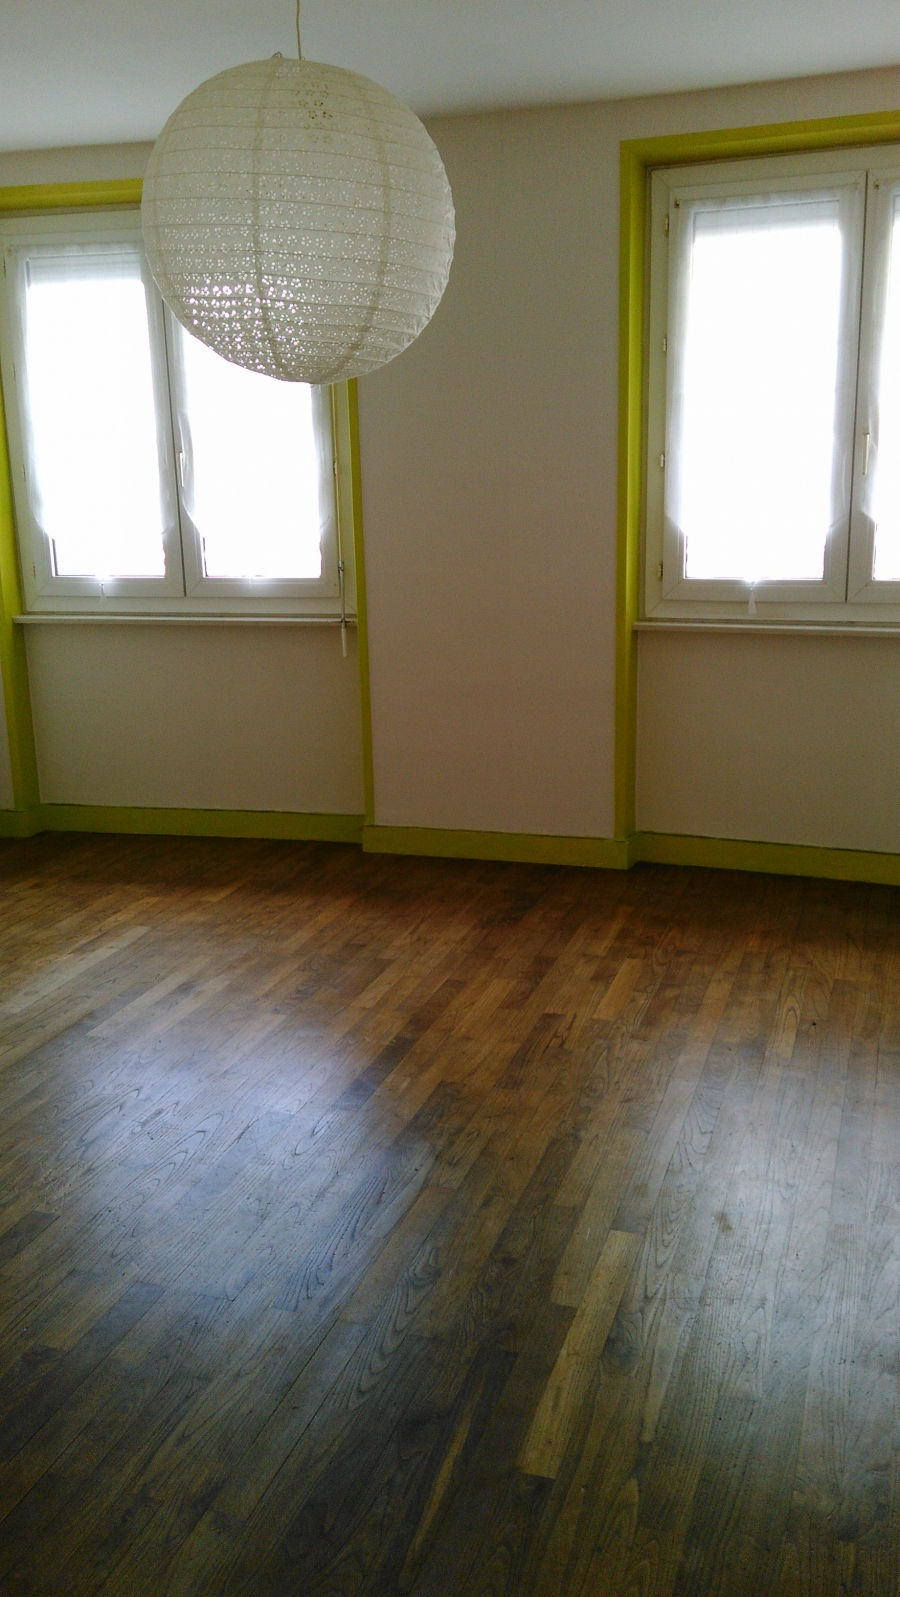 A vendre recouvrance appartement t4 avec l 39 agence for Agence immobiliere brest